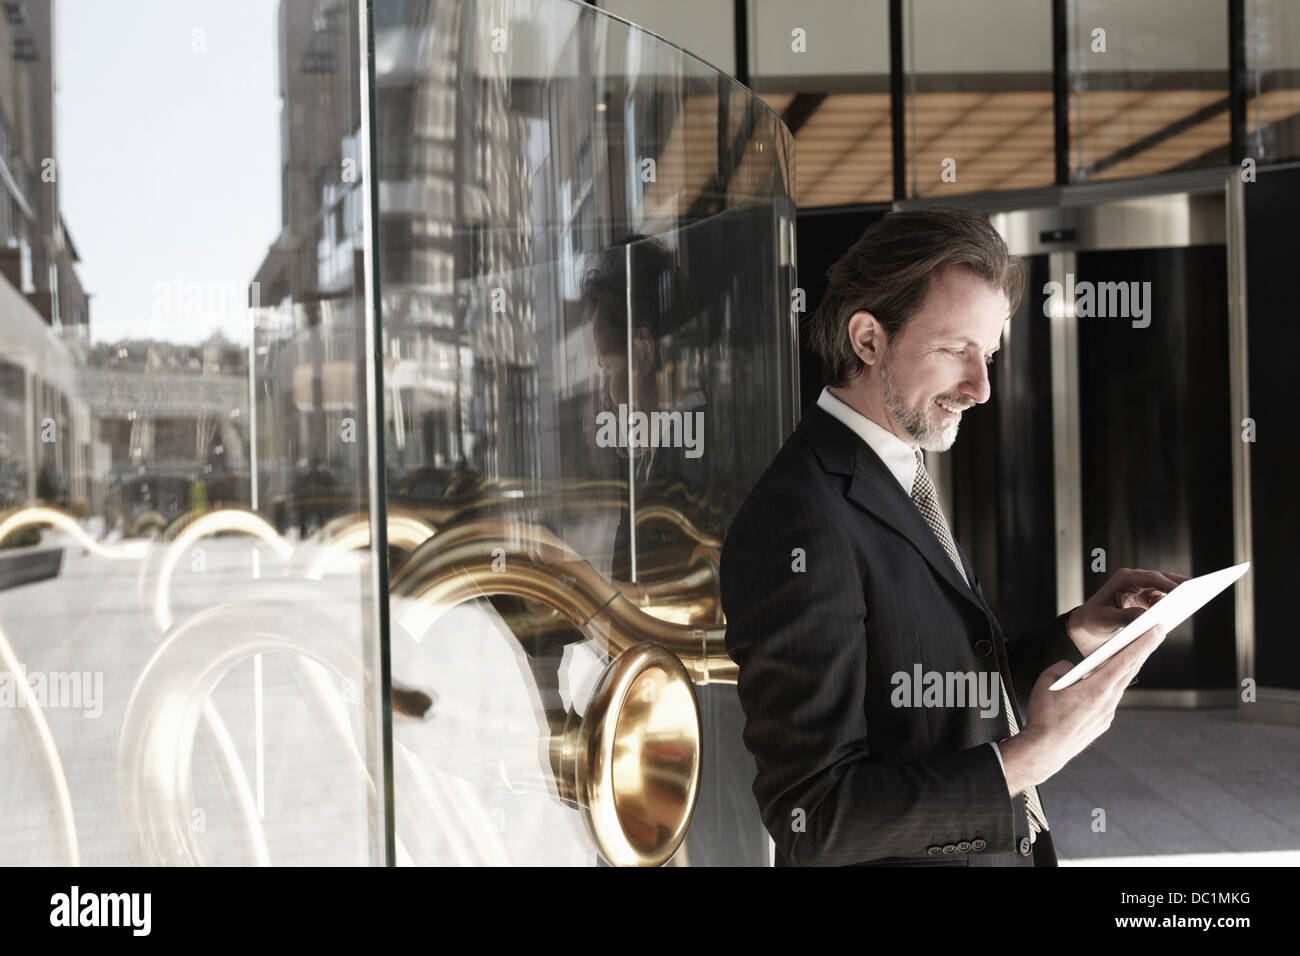 Mid adult businessman leaning against store window and using digital tablet - Stock Image